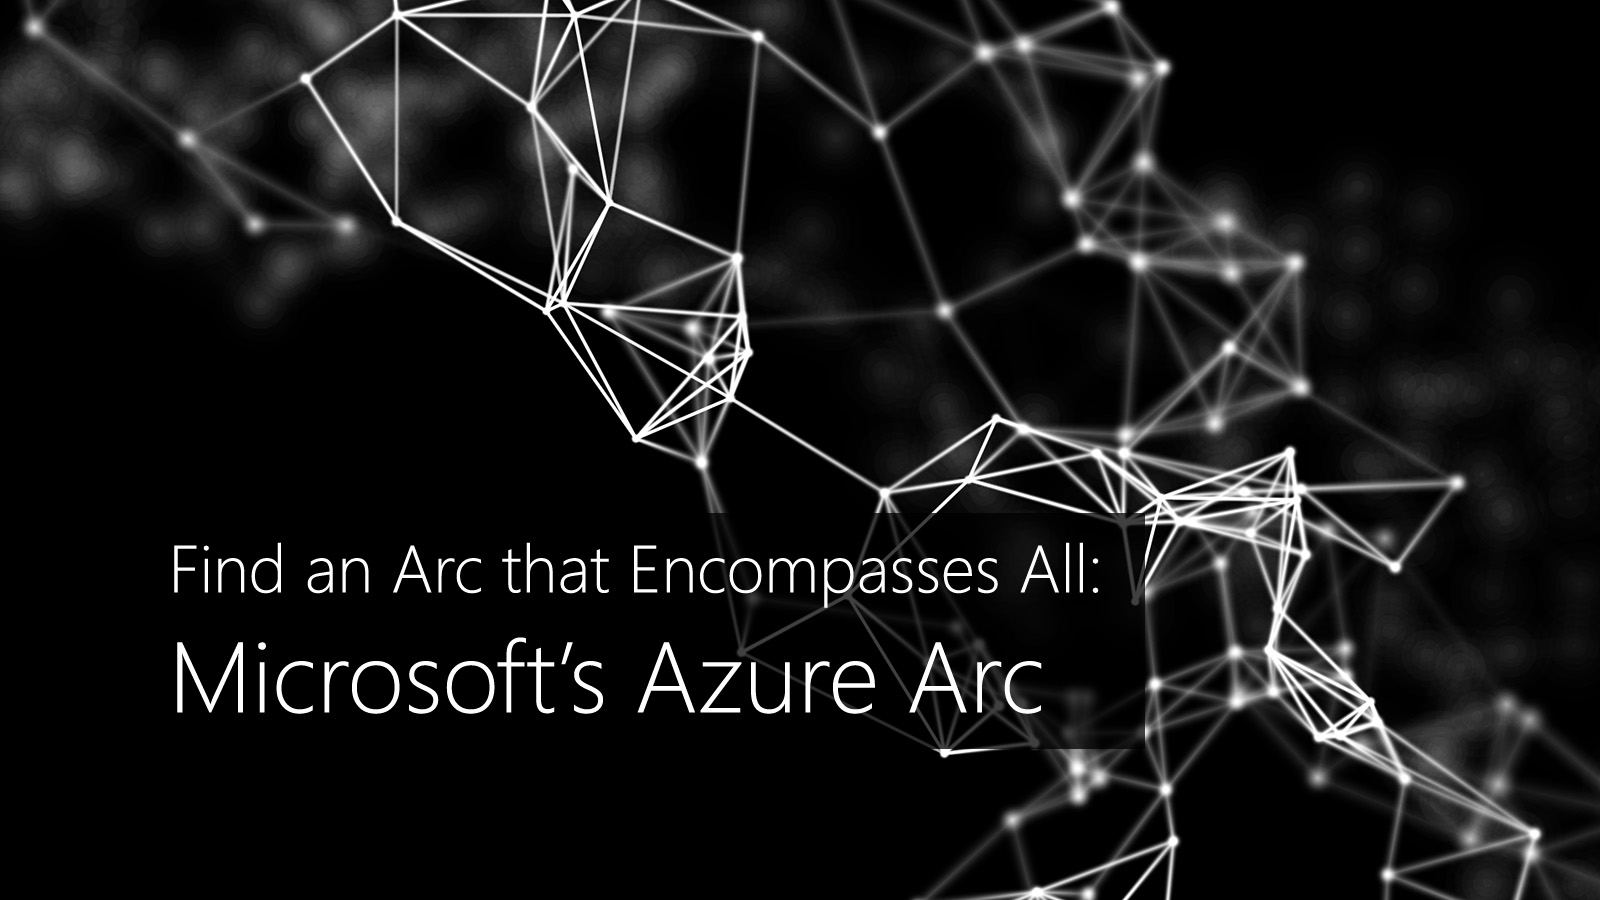 Find an Arc that Encompasses All: Microsoft's Azure Arc